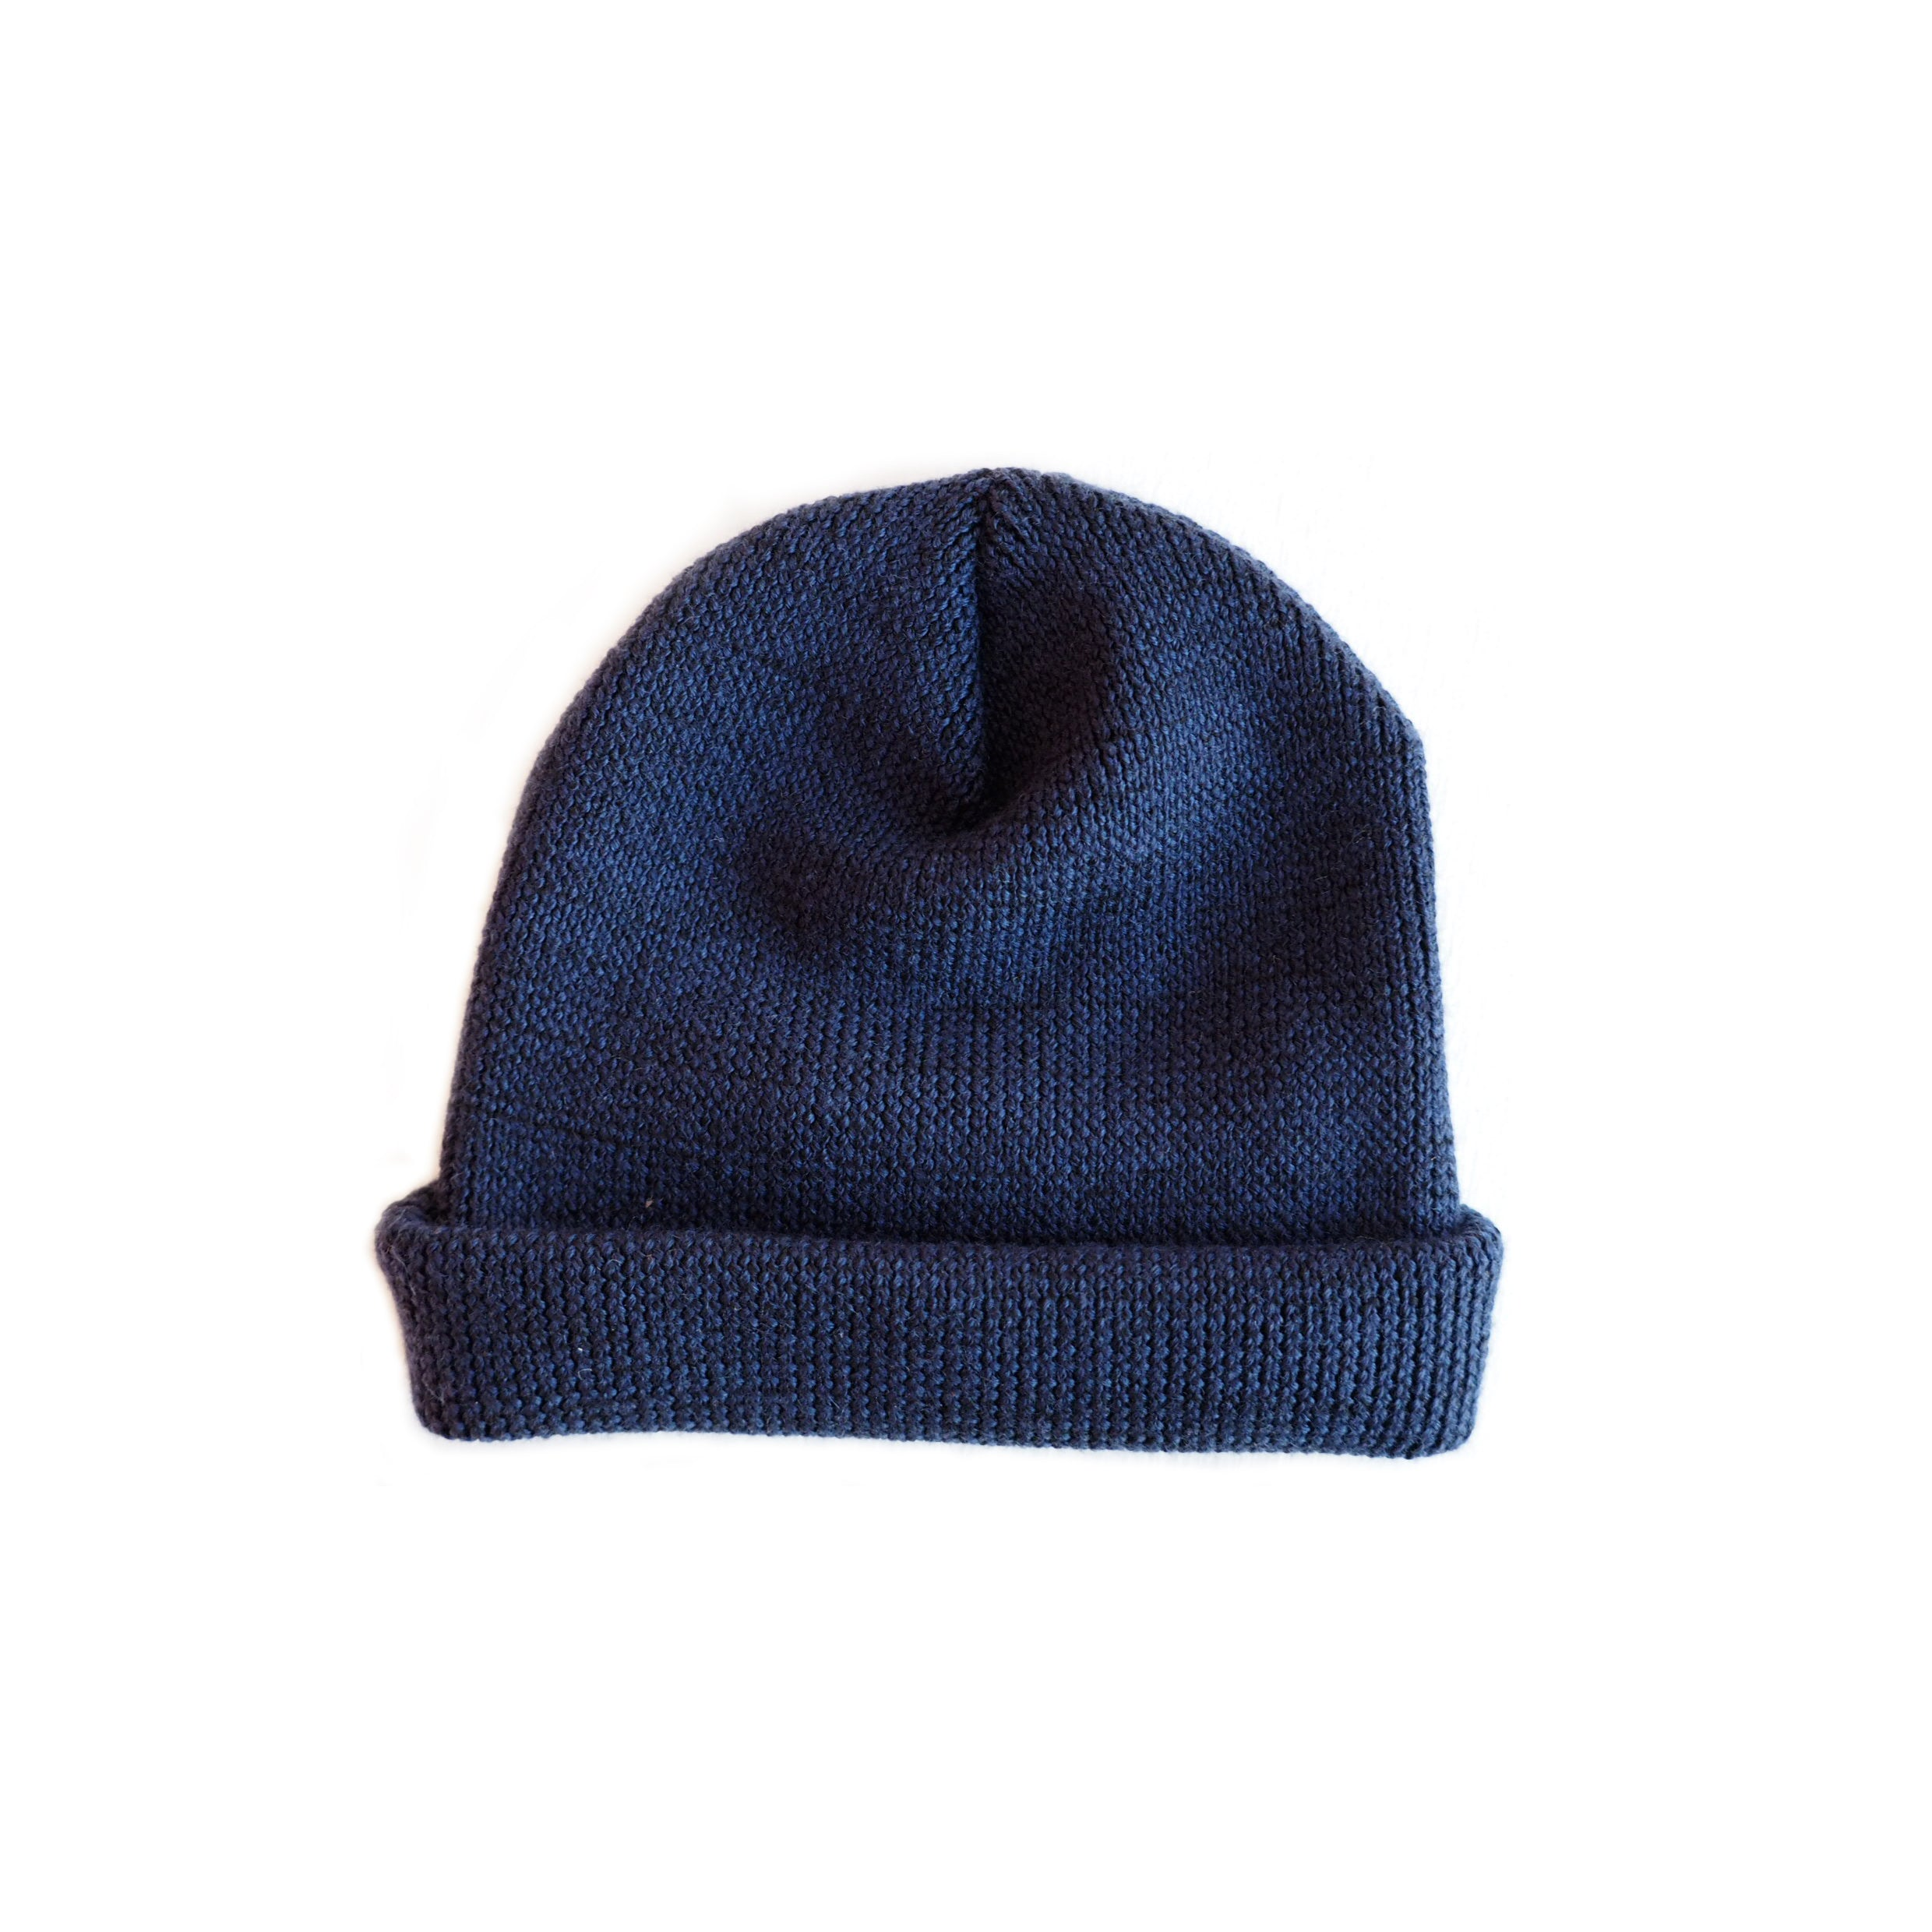 POLLEN TOQUE/BEANIE - MIDNIGHT